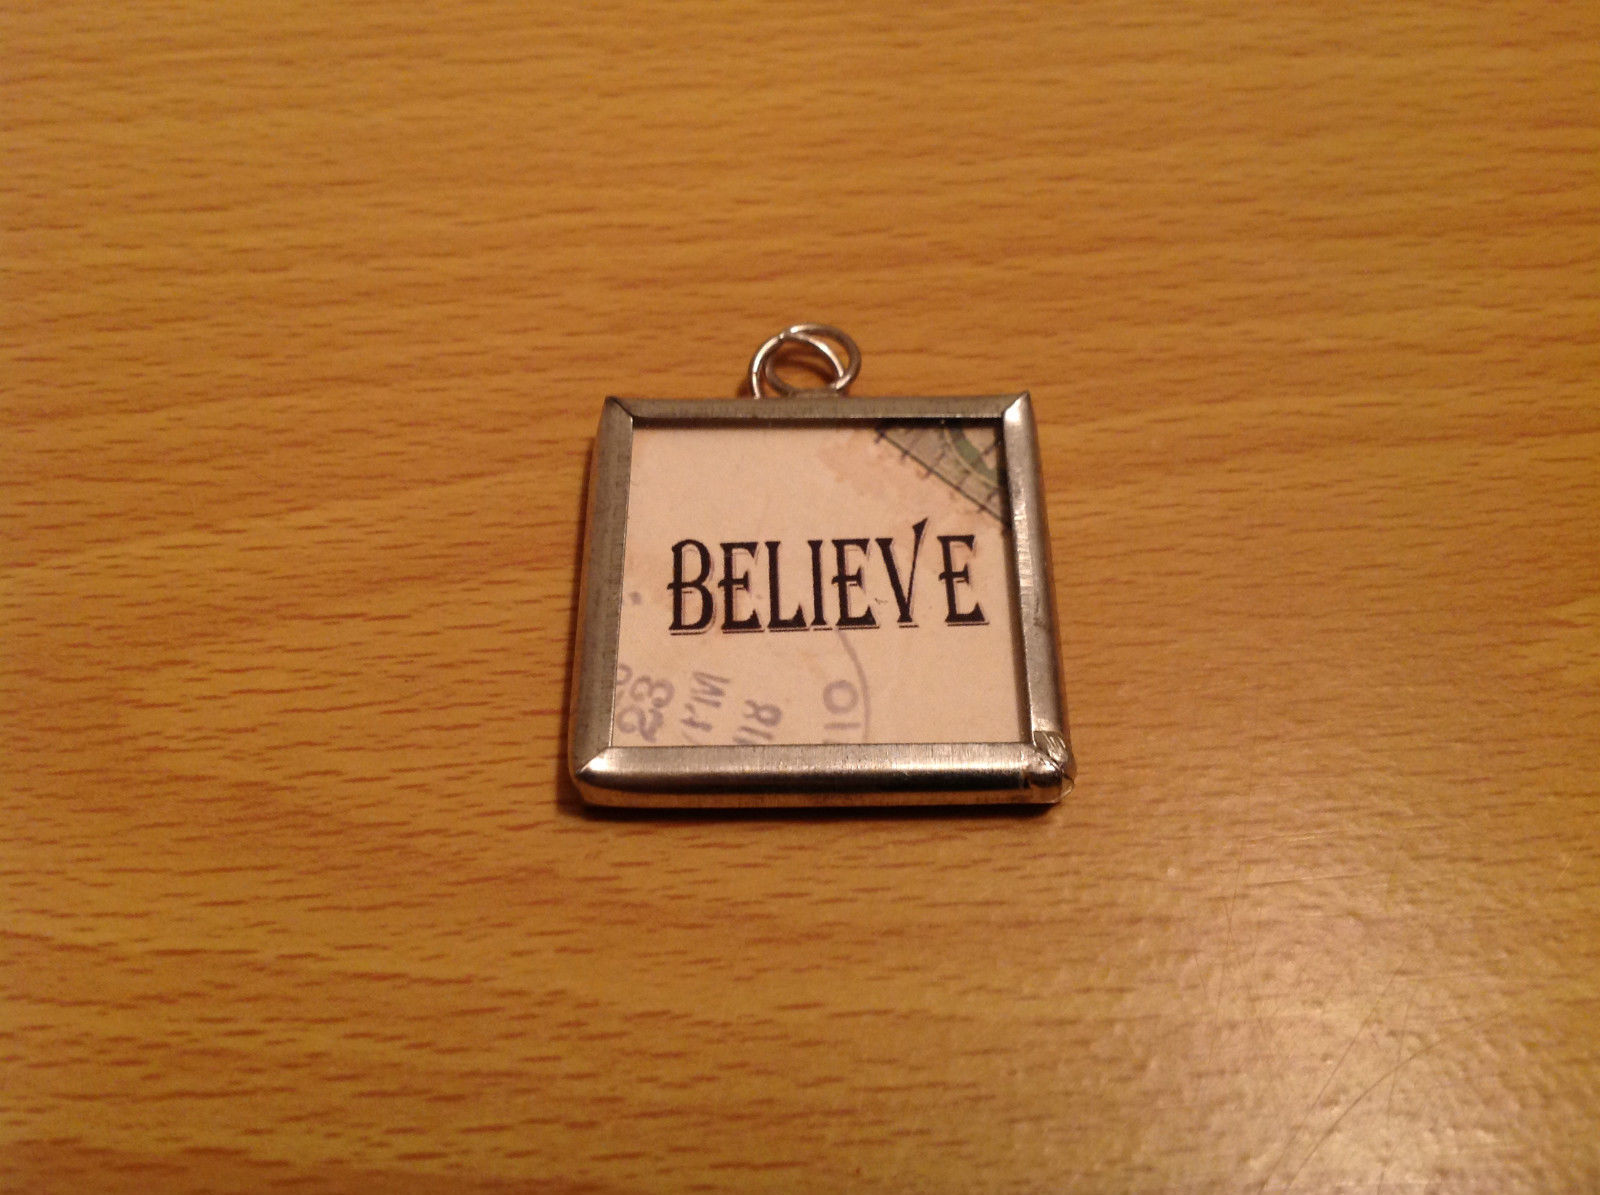 Reversible Versatile Metal and Glass Tag Charm Present Tie On Believe and Santa